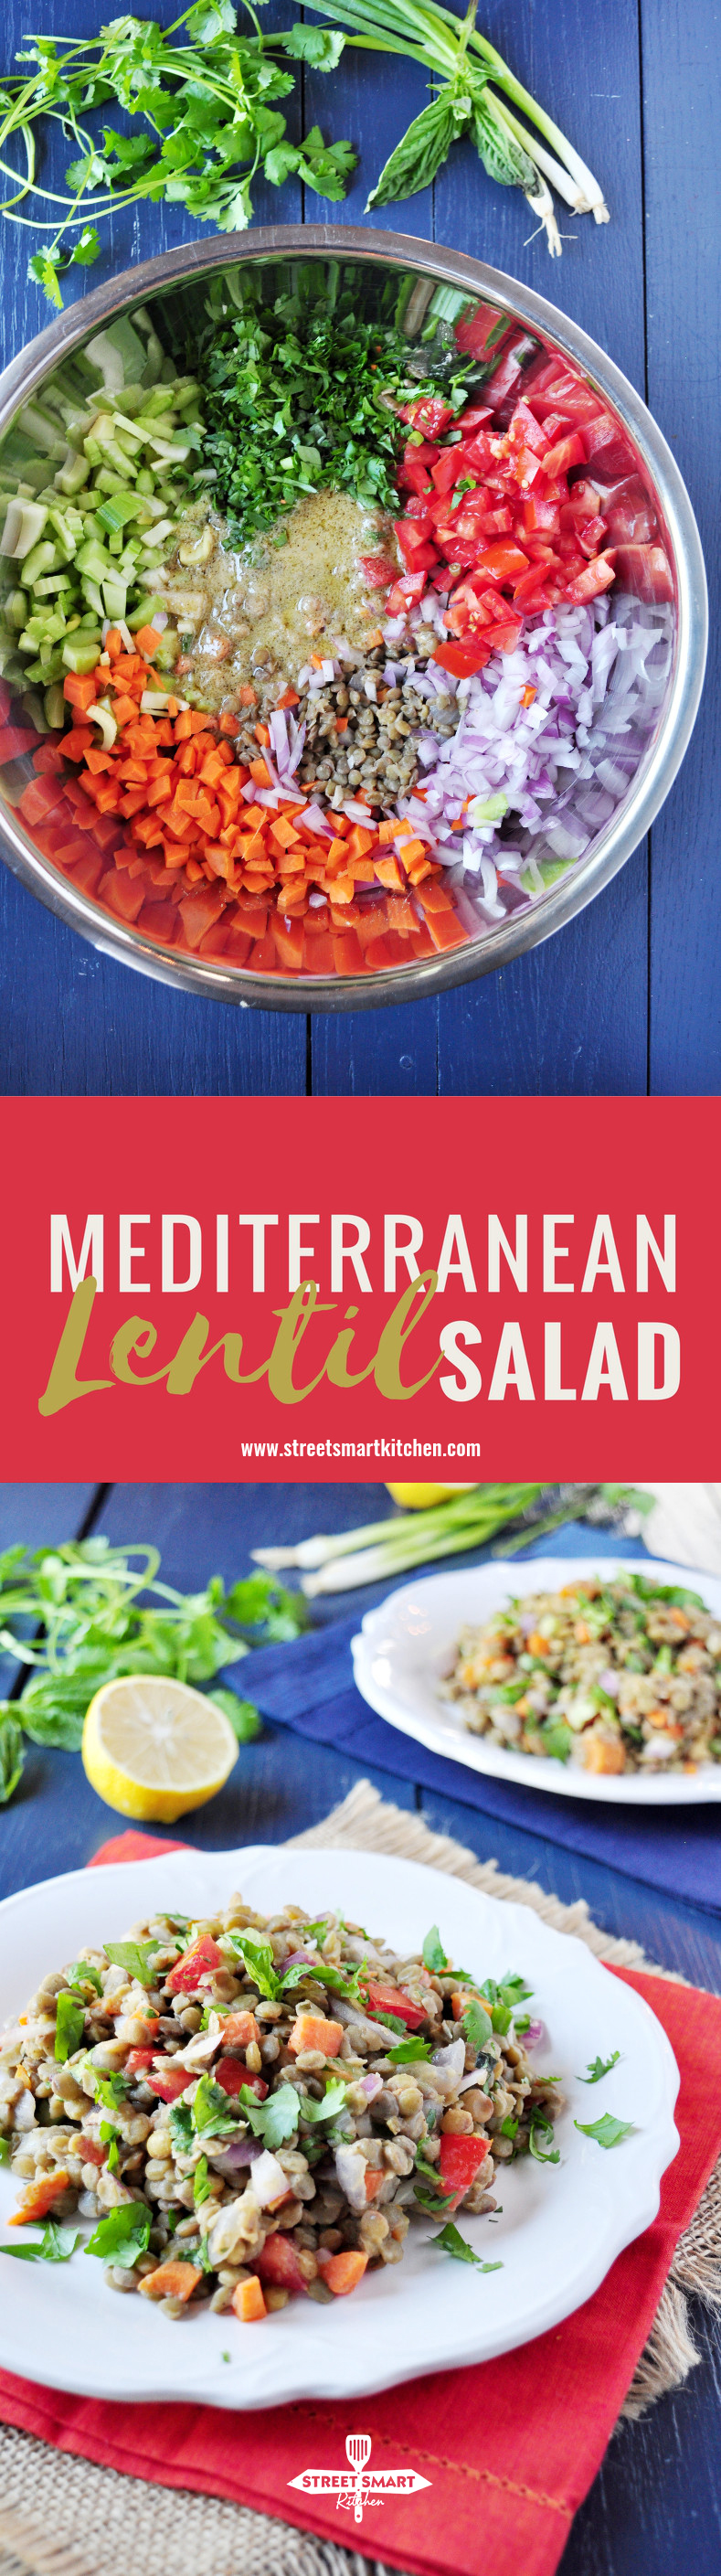 his is a delicious lentil salad that's wonderful when served as a side as well as nutritiously satisfying when served as a main. This recipe makes a huge batch because we'd suggest you consider making it ahead of time as a side dish to pair with your meat or seafood throughout the week.